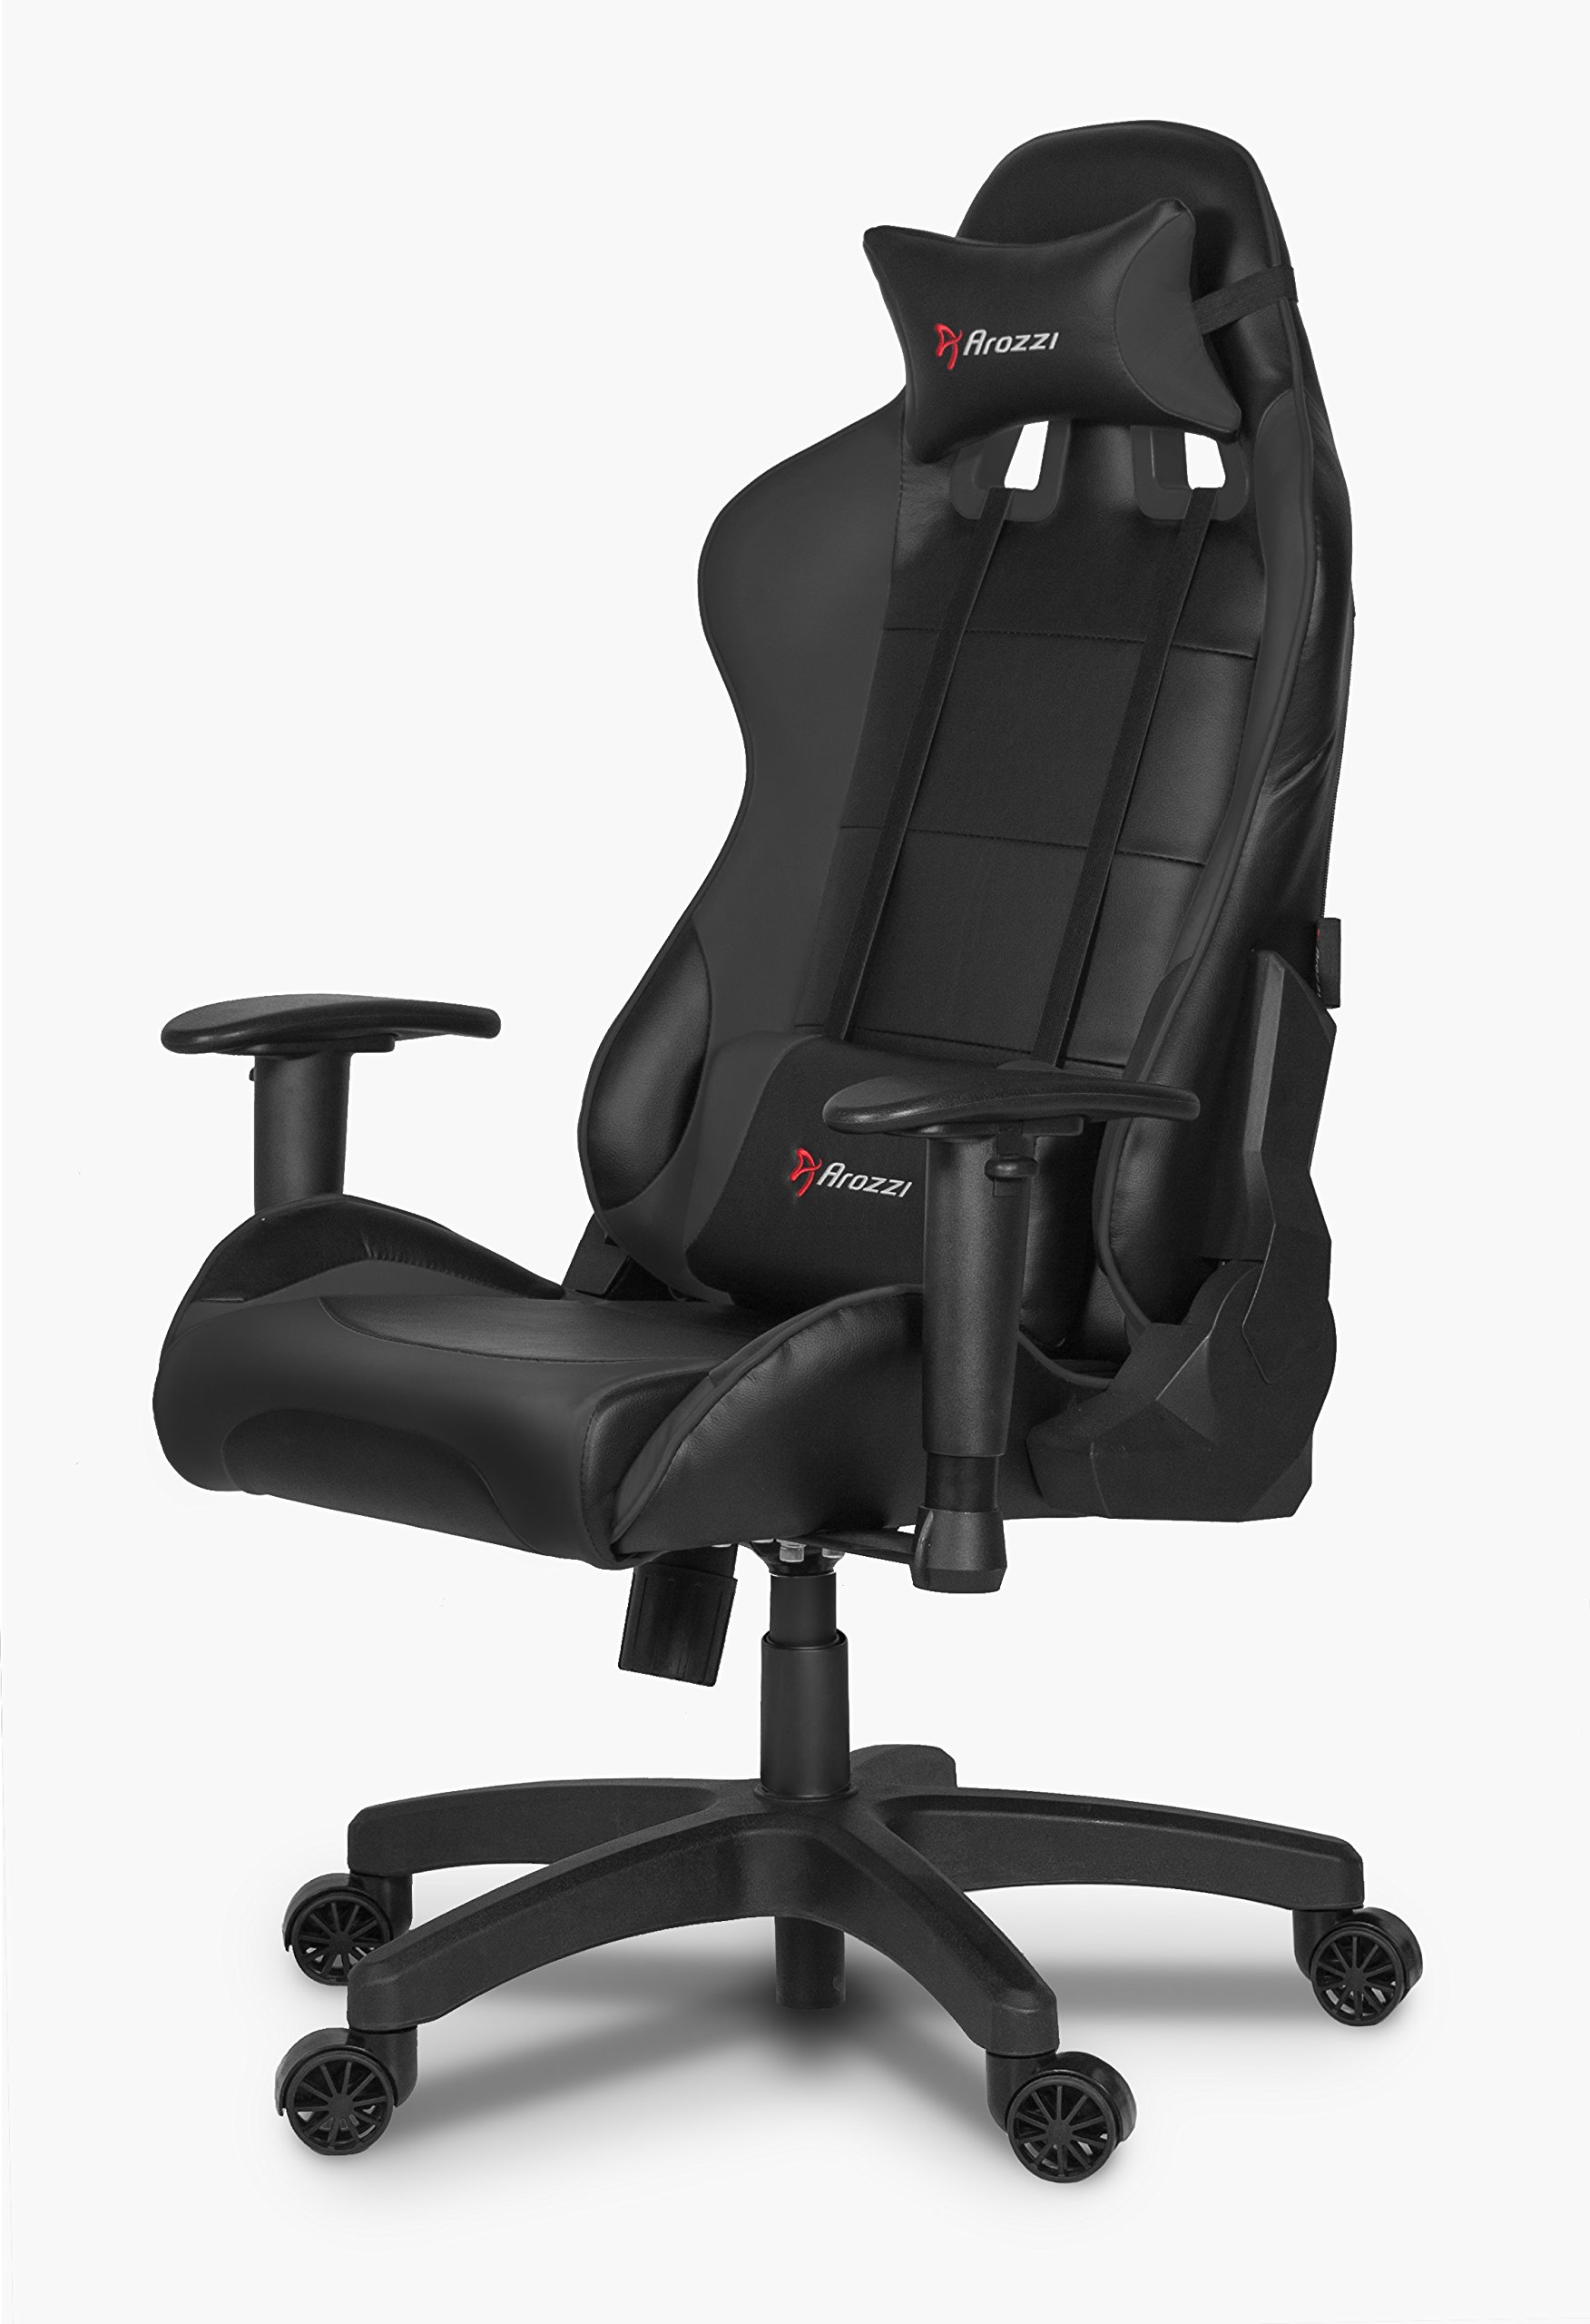 Arozzi Verona Junior Gaming Chair for Kids with High Backrest, Recliner, Swivel, Tilt, Rocker and Seat Height Adjustment, Lumbar and Headrest Pillows Included - Black